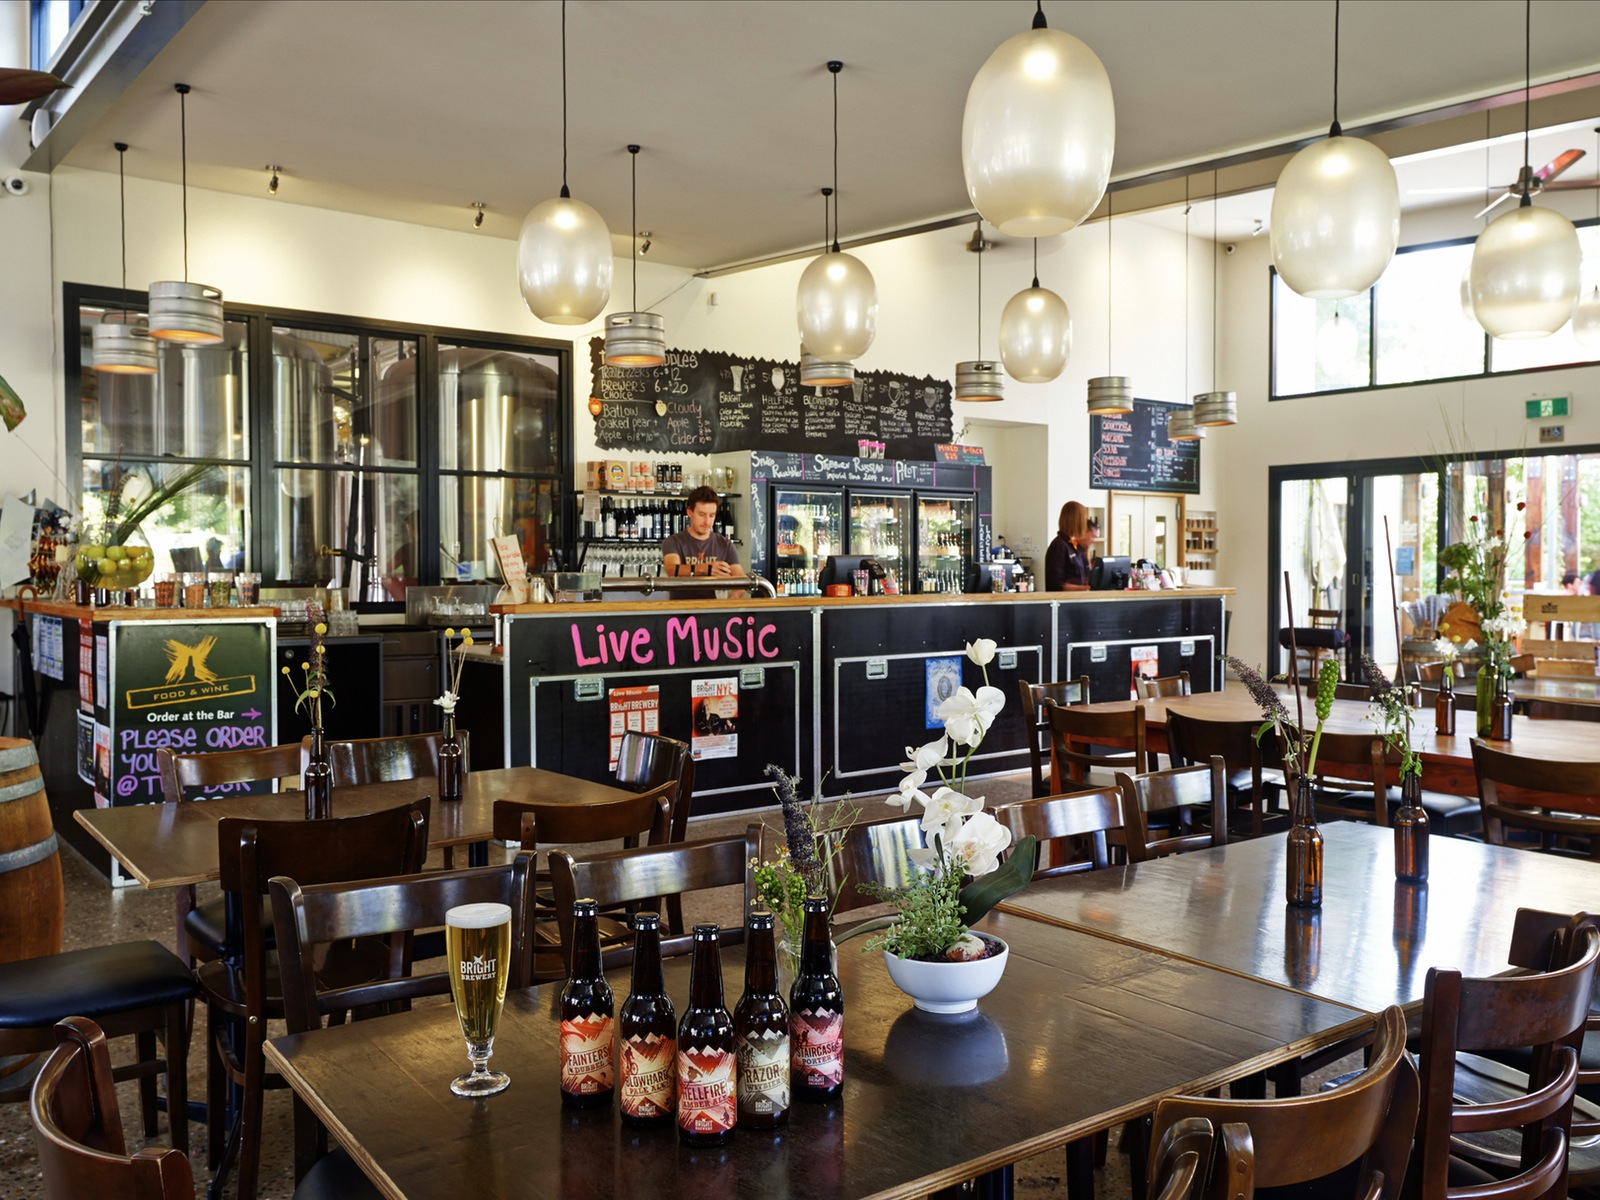 Inside Bright Brewery's bar and restaurant